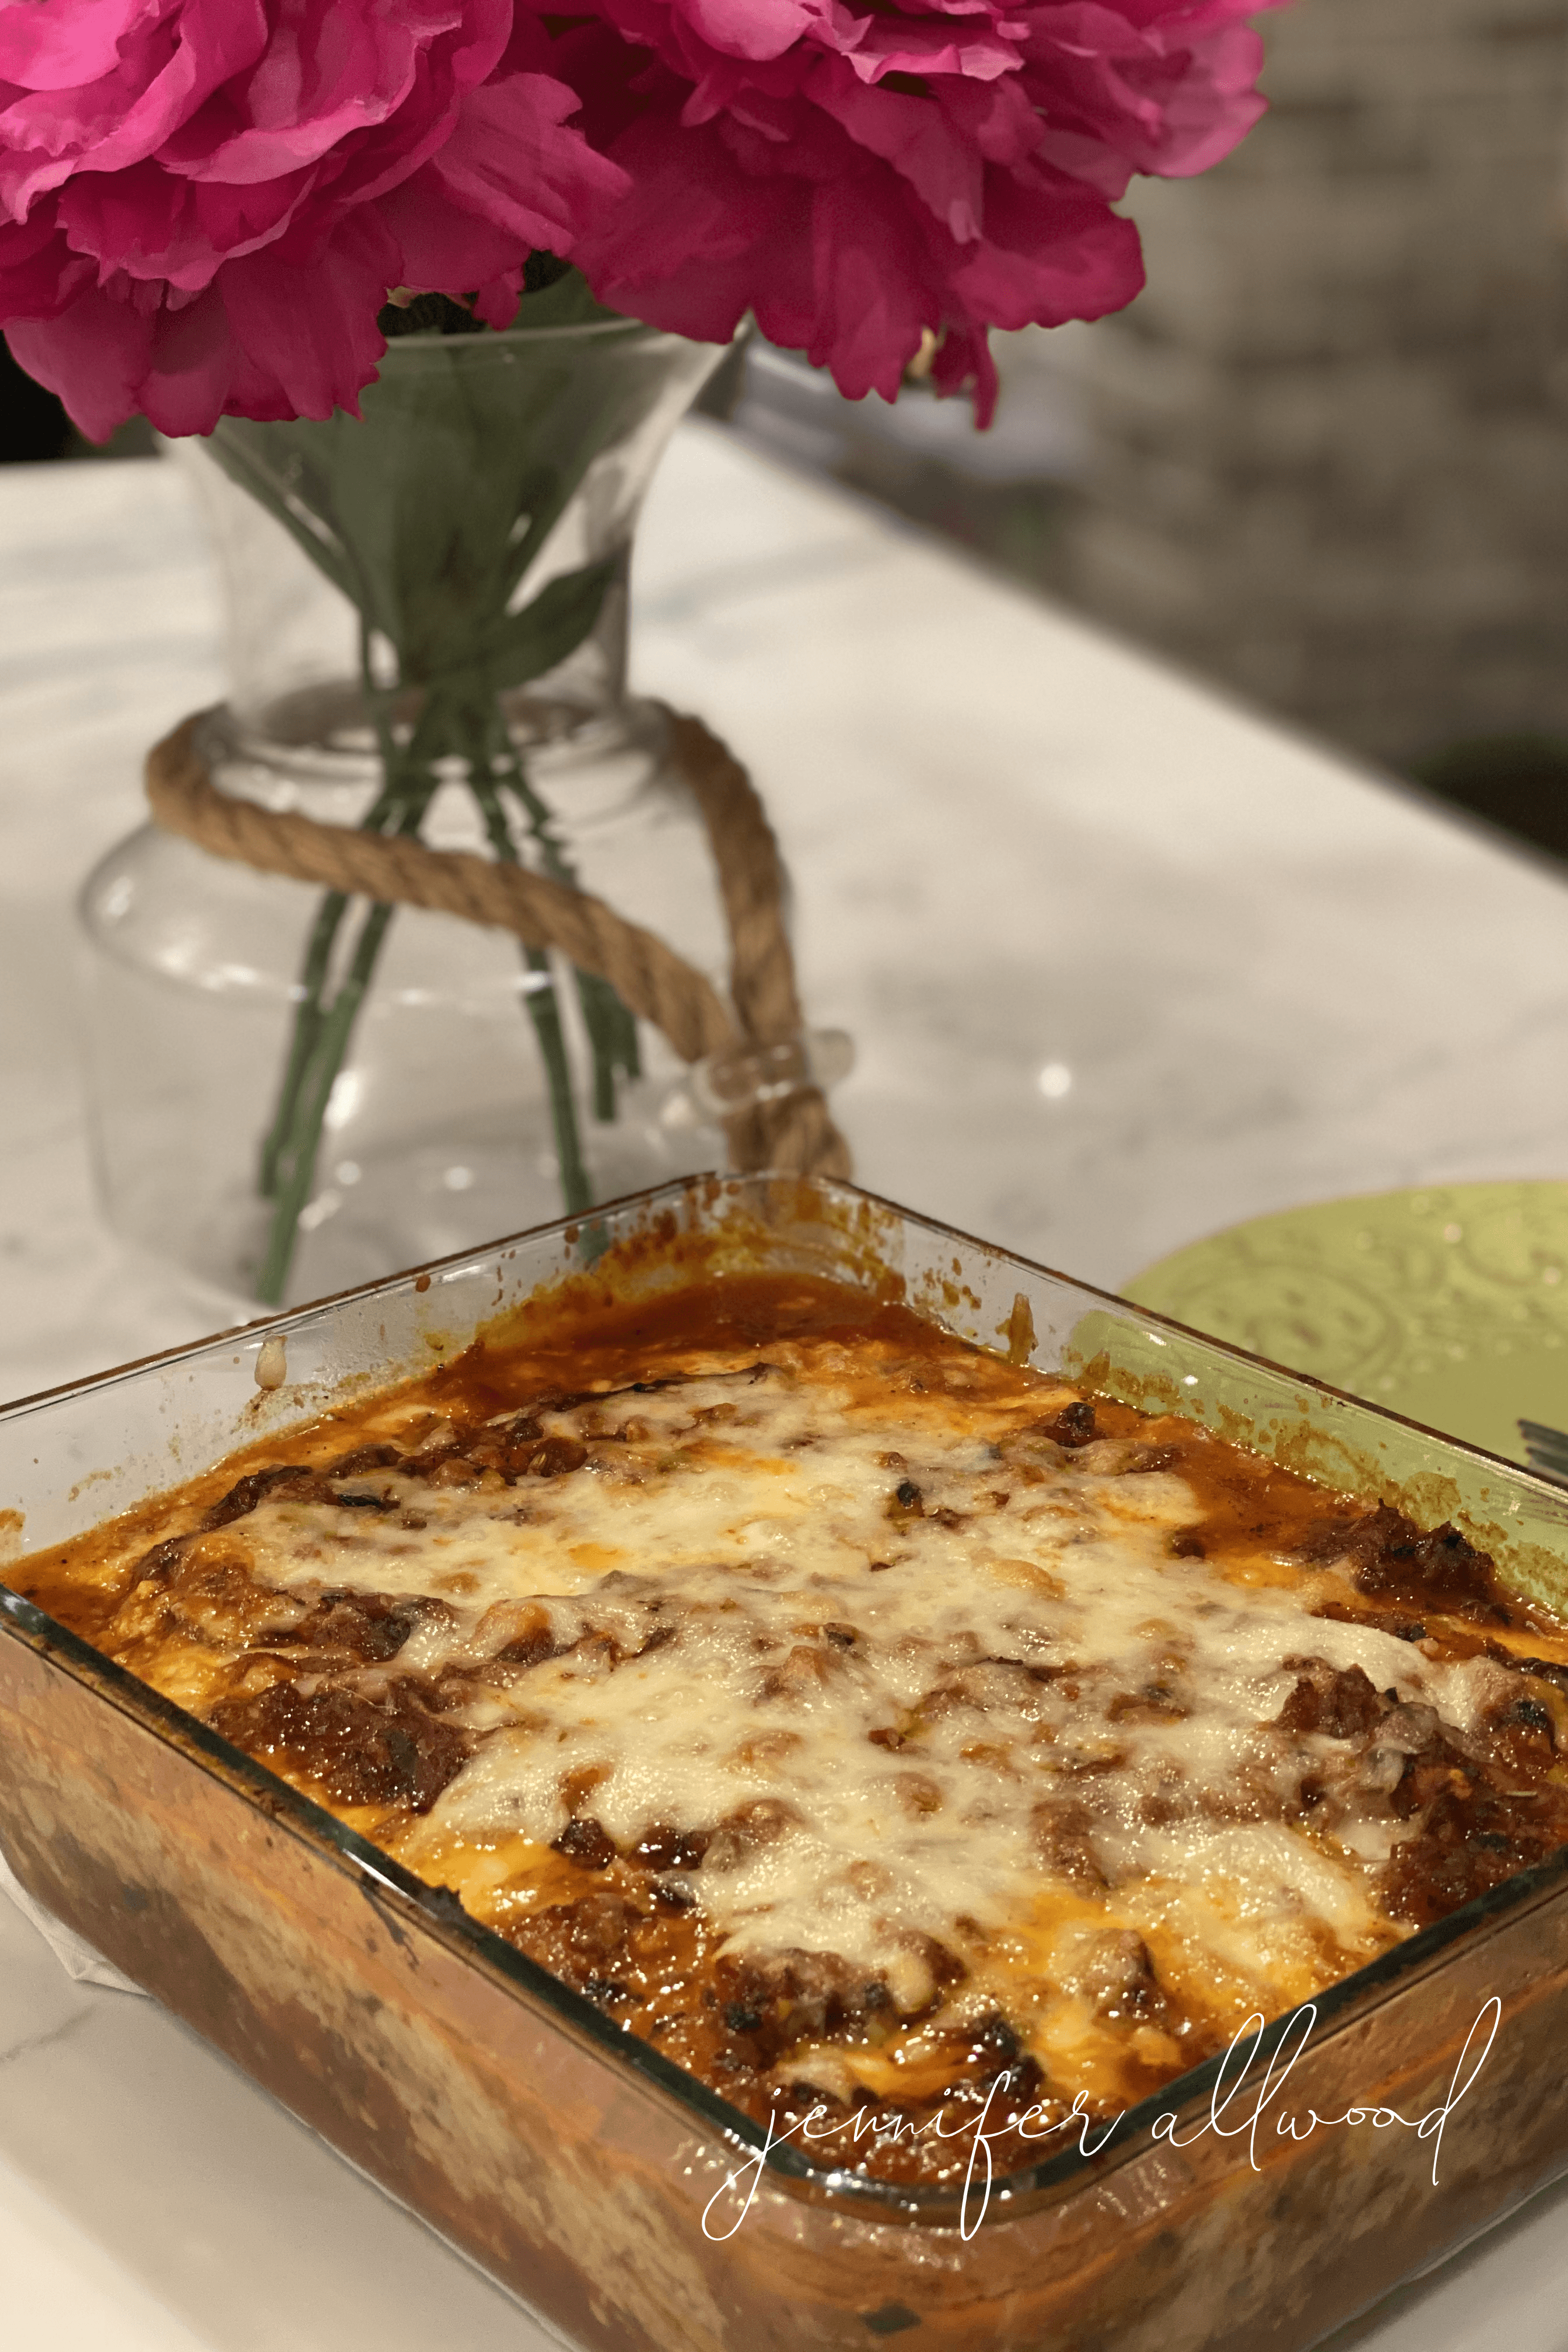 Mr. Magic's Eggplant Lasagna